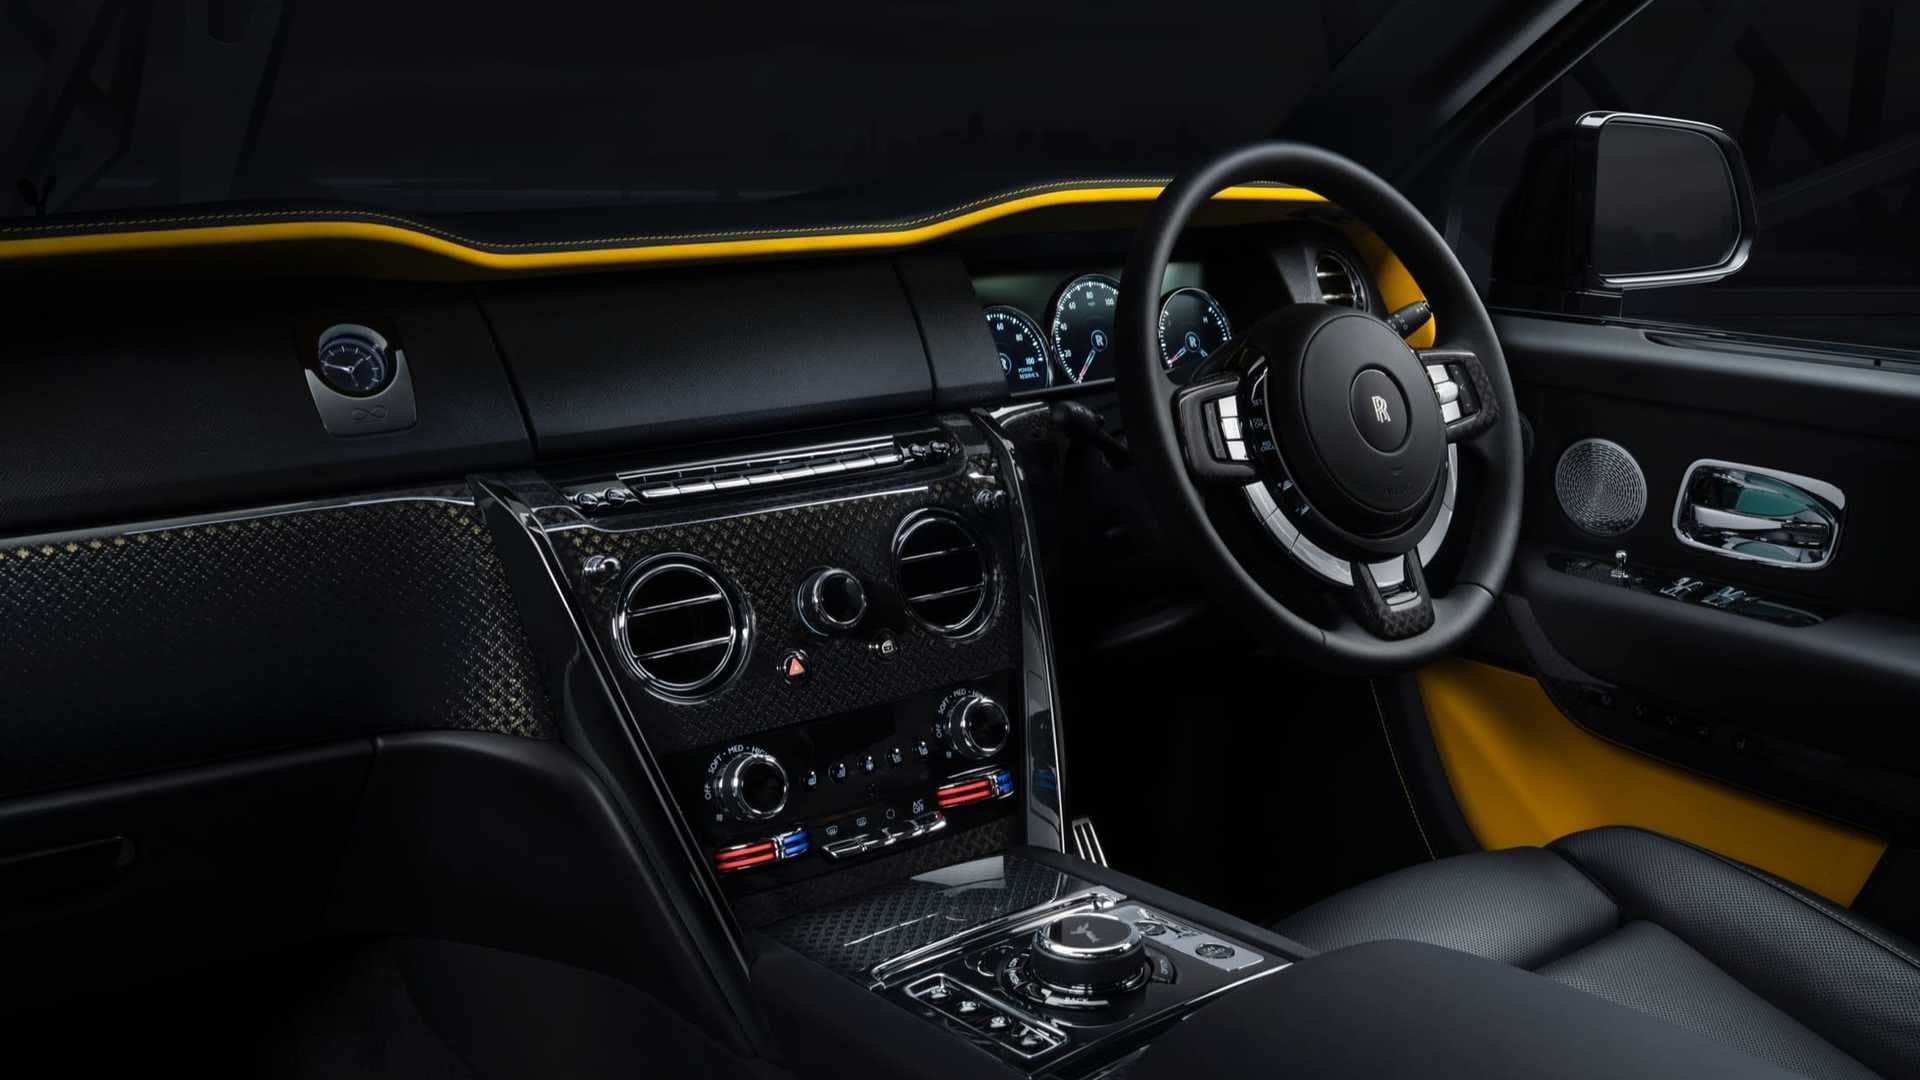 Three-dimensional carbon fibre on the centre console gives the interior a unique look.